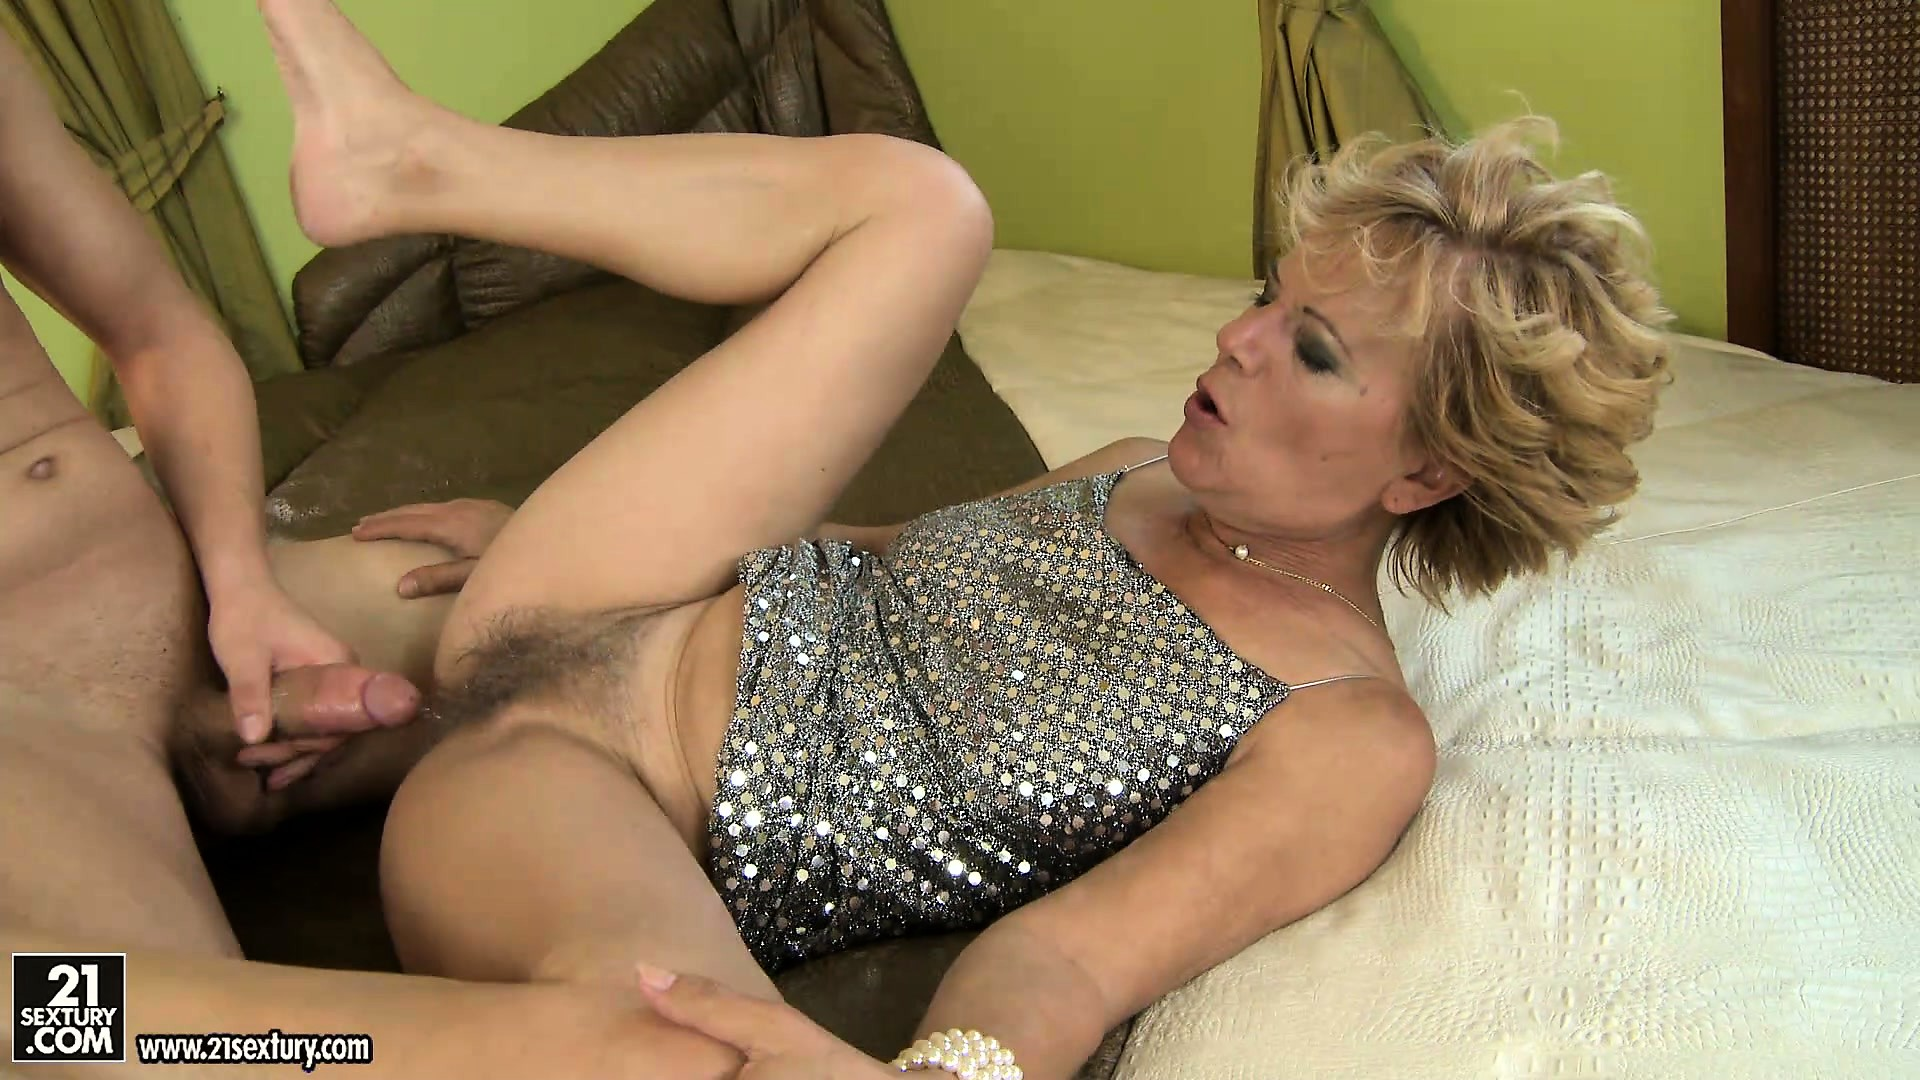 Stunning babe fucked by huge black cock